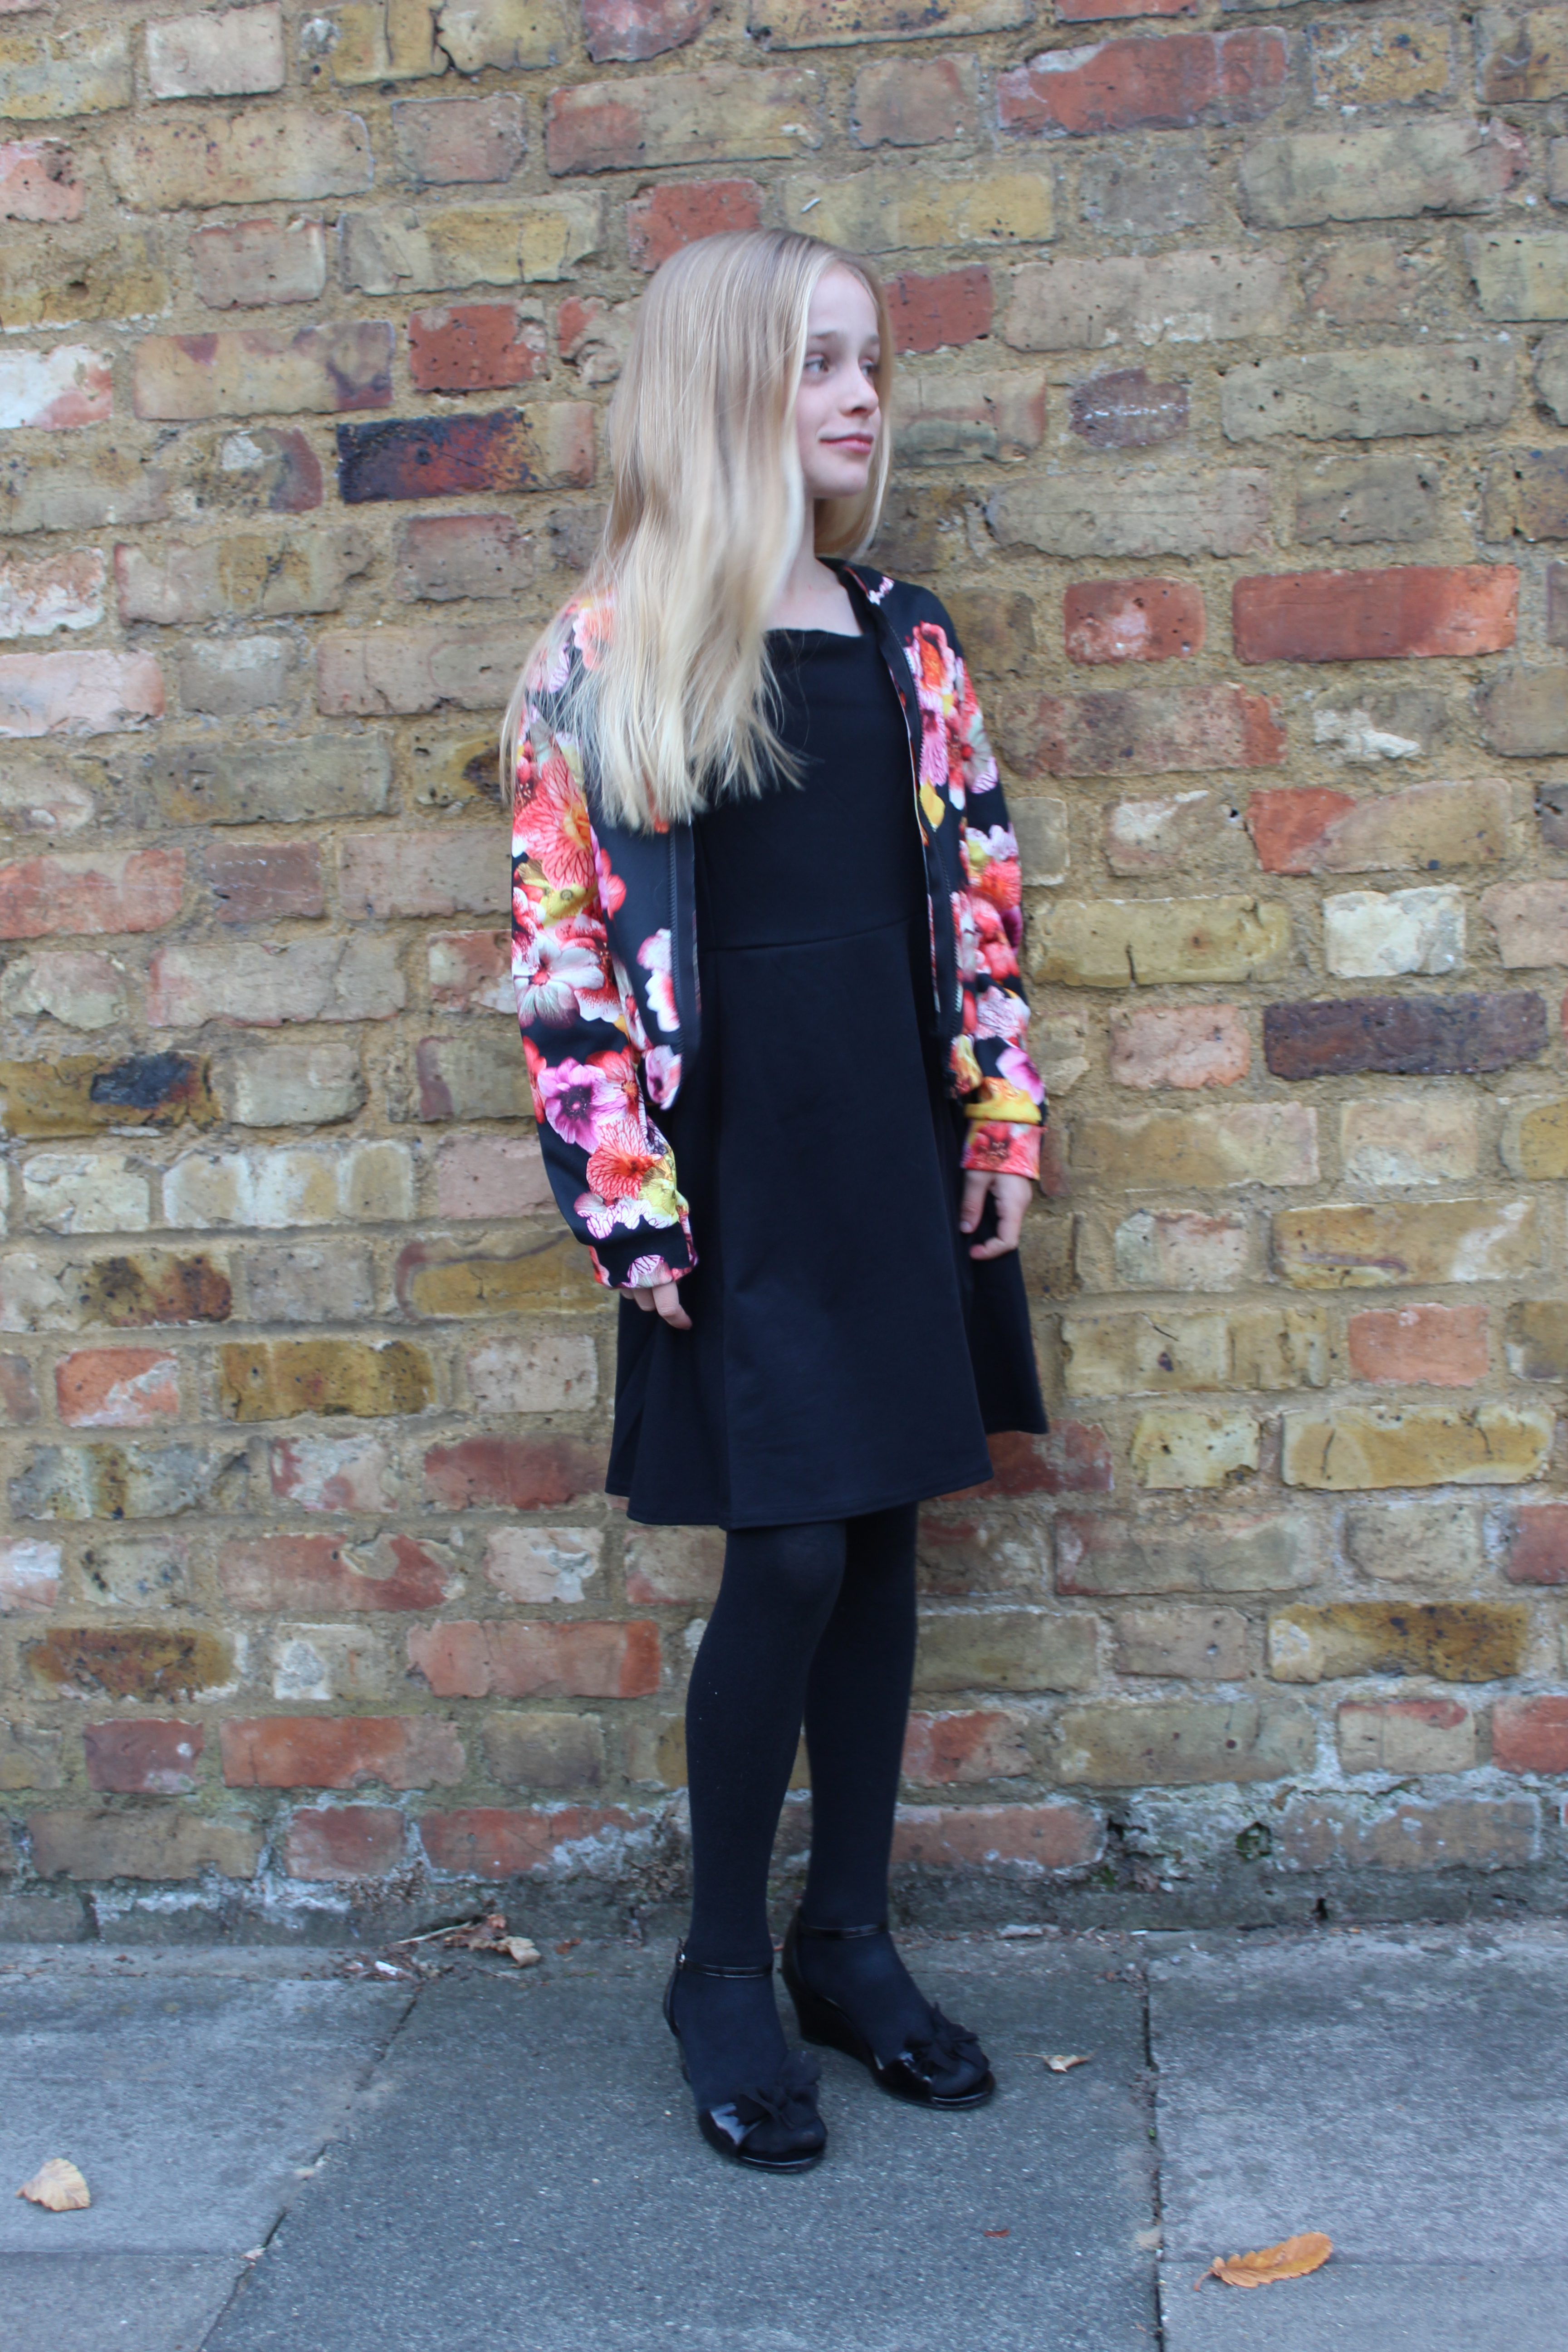 dressing appropriately as a tween, boohoo clothing for kids,